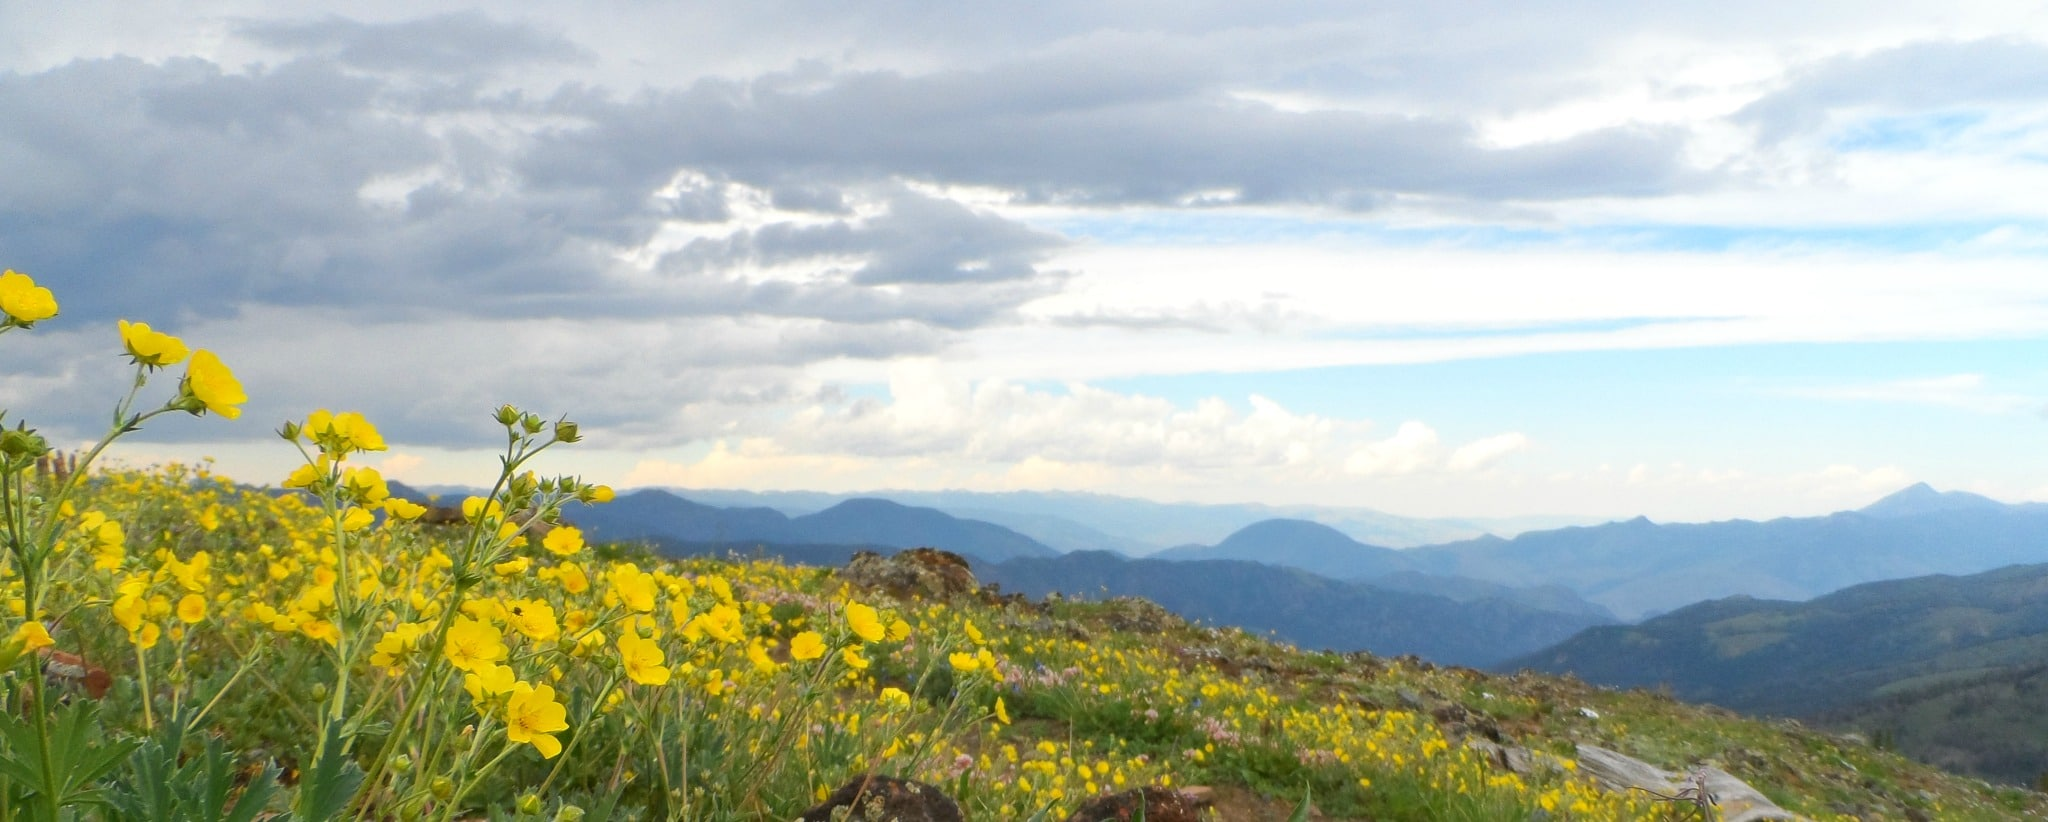 1,200 miles of backcountry trail await you!